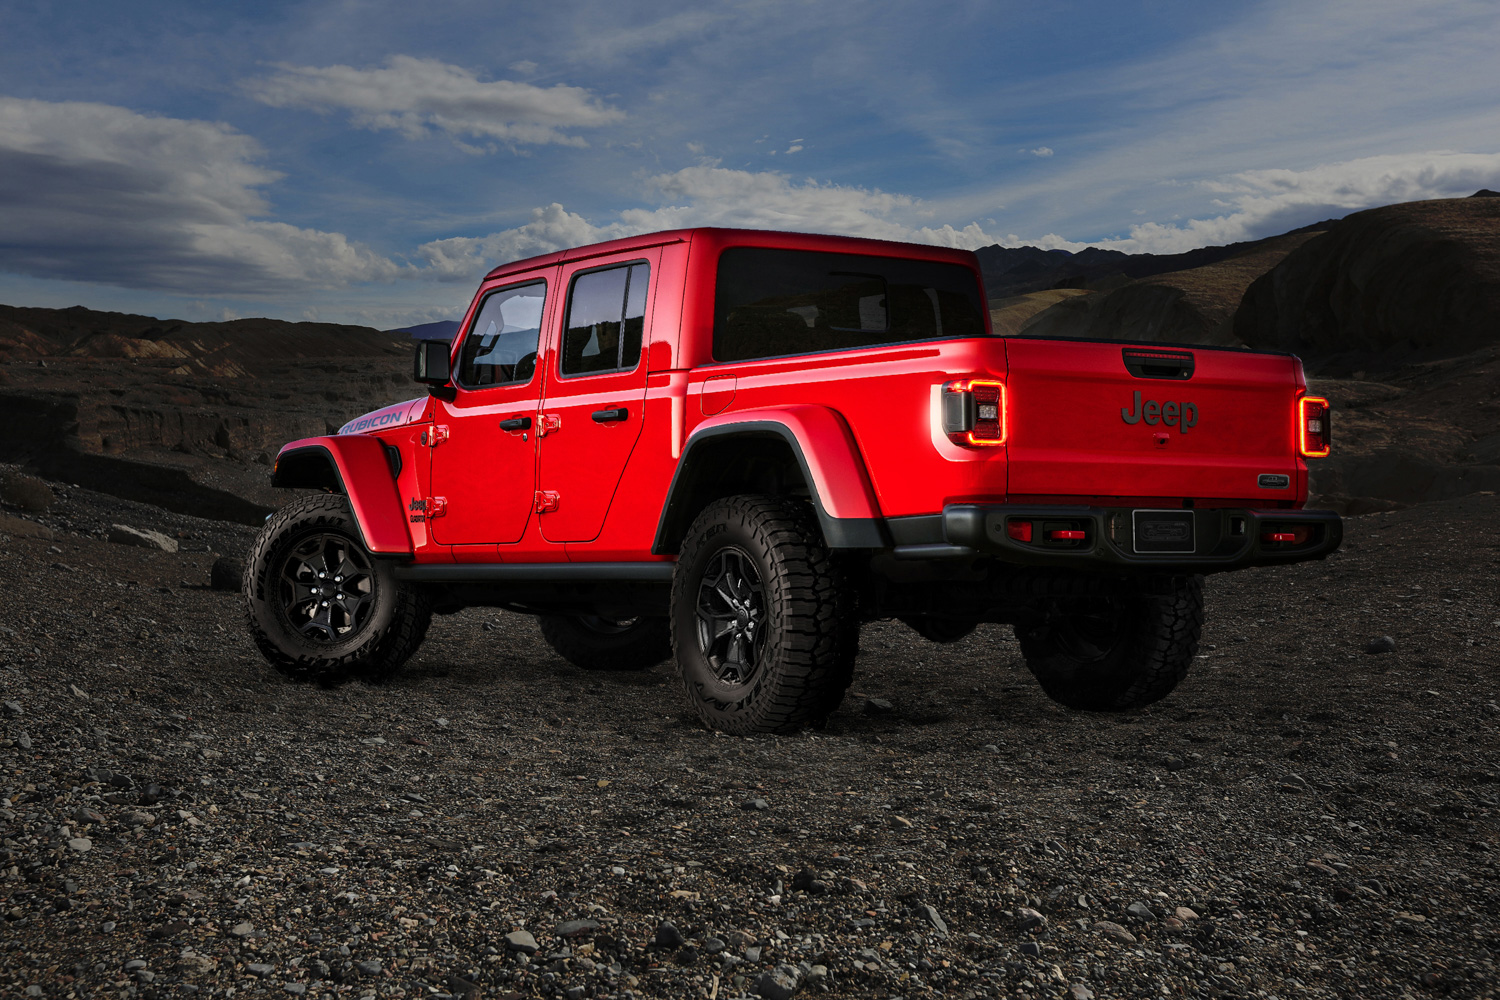 2020 Jeep Gladiator Launch Edition 3/4 rear